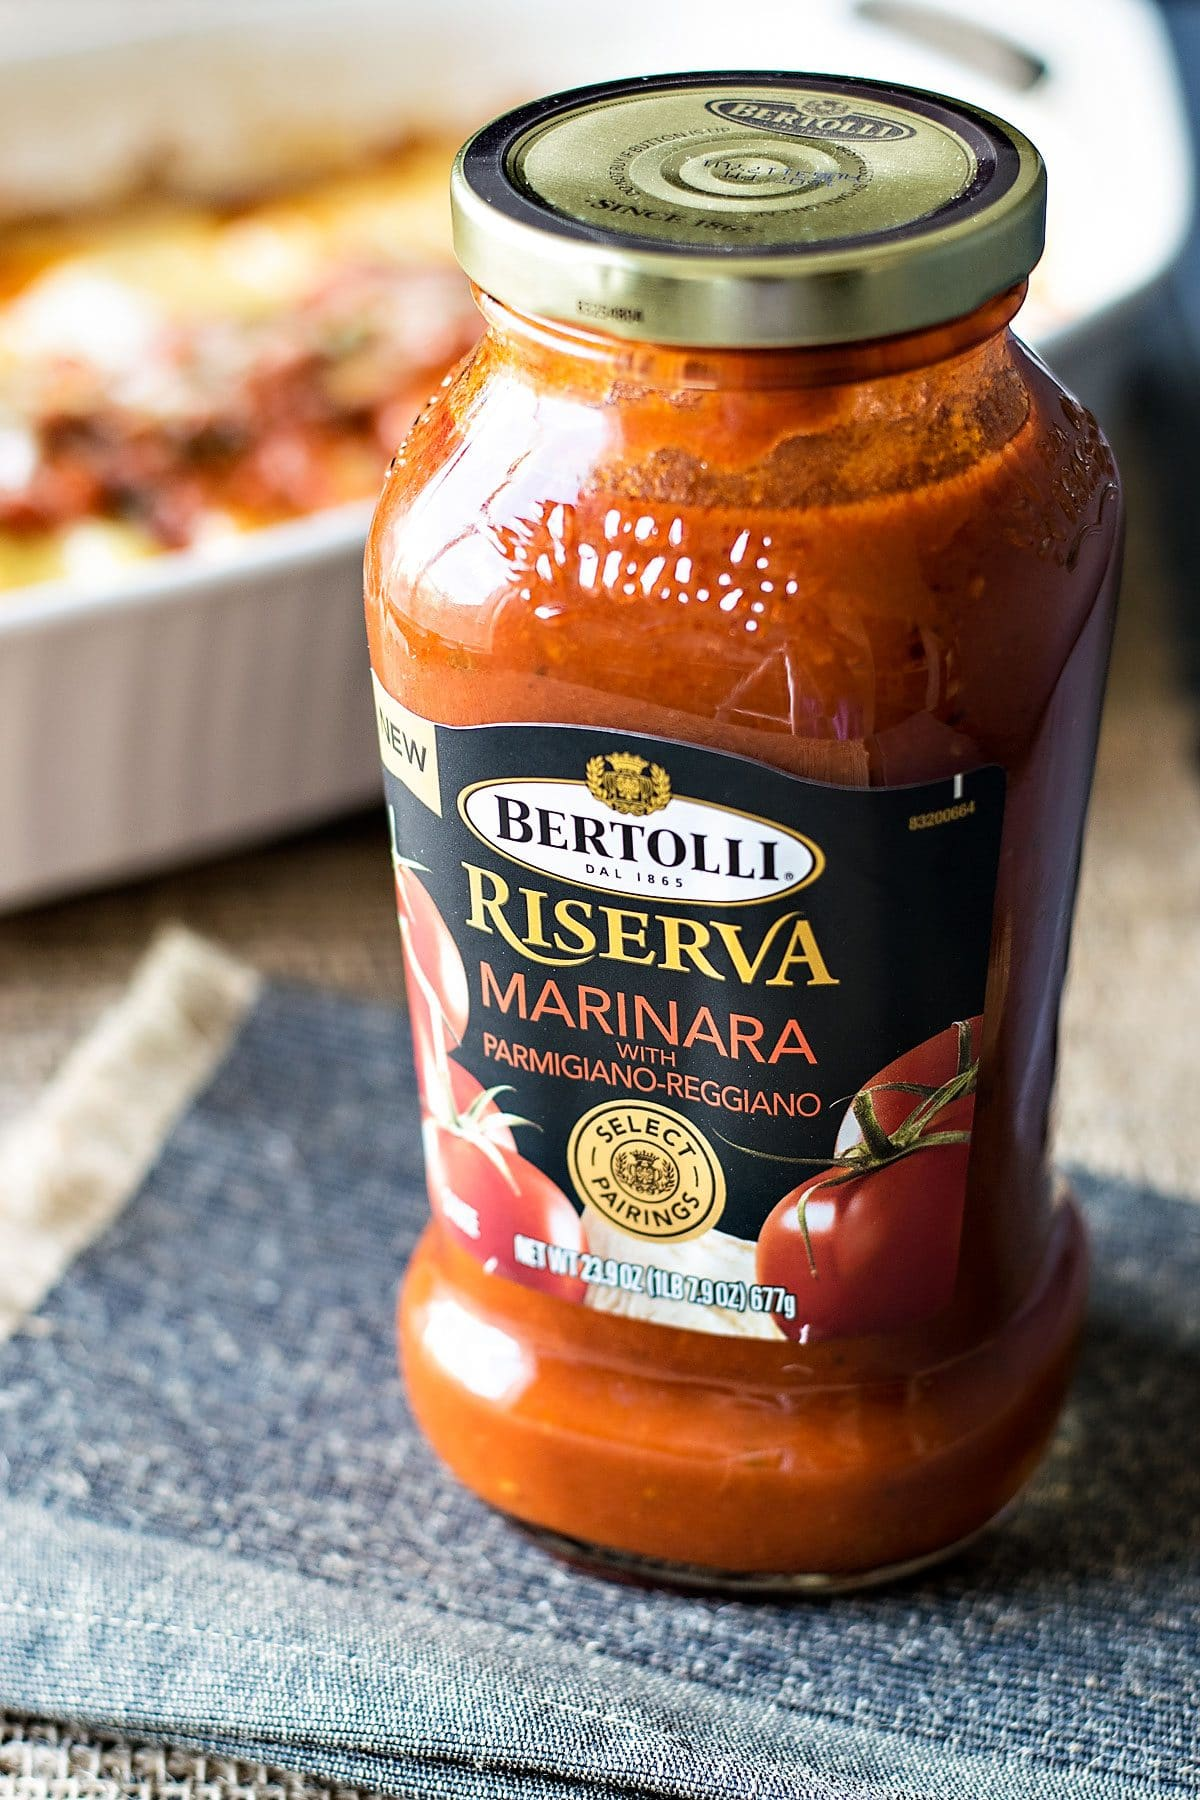 Easy Cheesy Manicotti! Bring a restaurant classic to your dinner table with this easy cheese manicotti recipe. Use Bertolli marinara sauce and cut your cook time in half! | HomemadeHooplah.com #spon